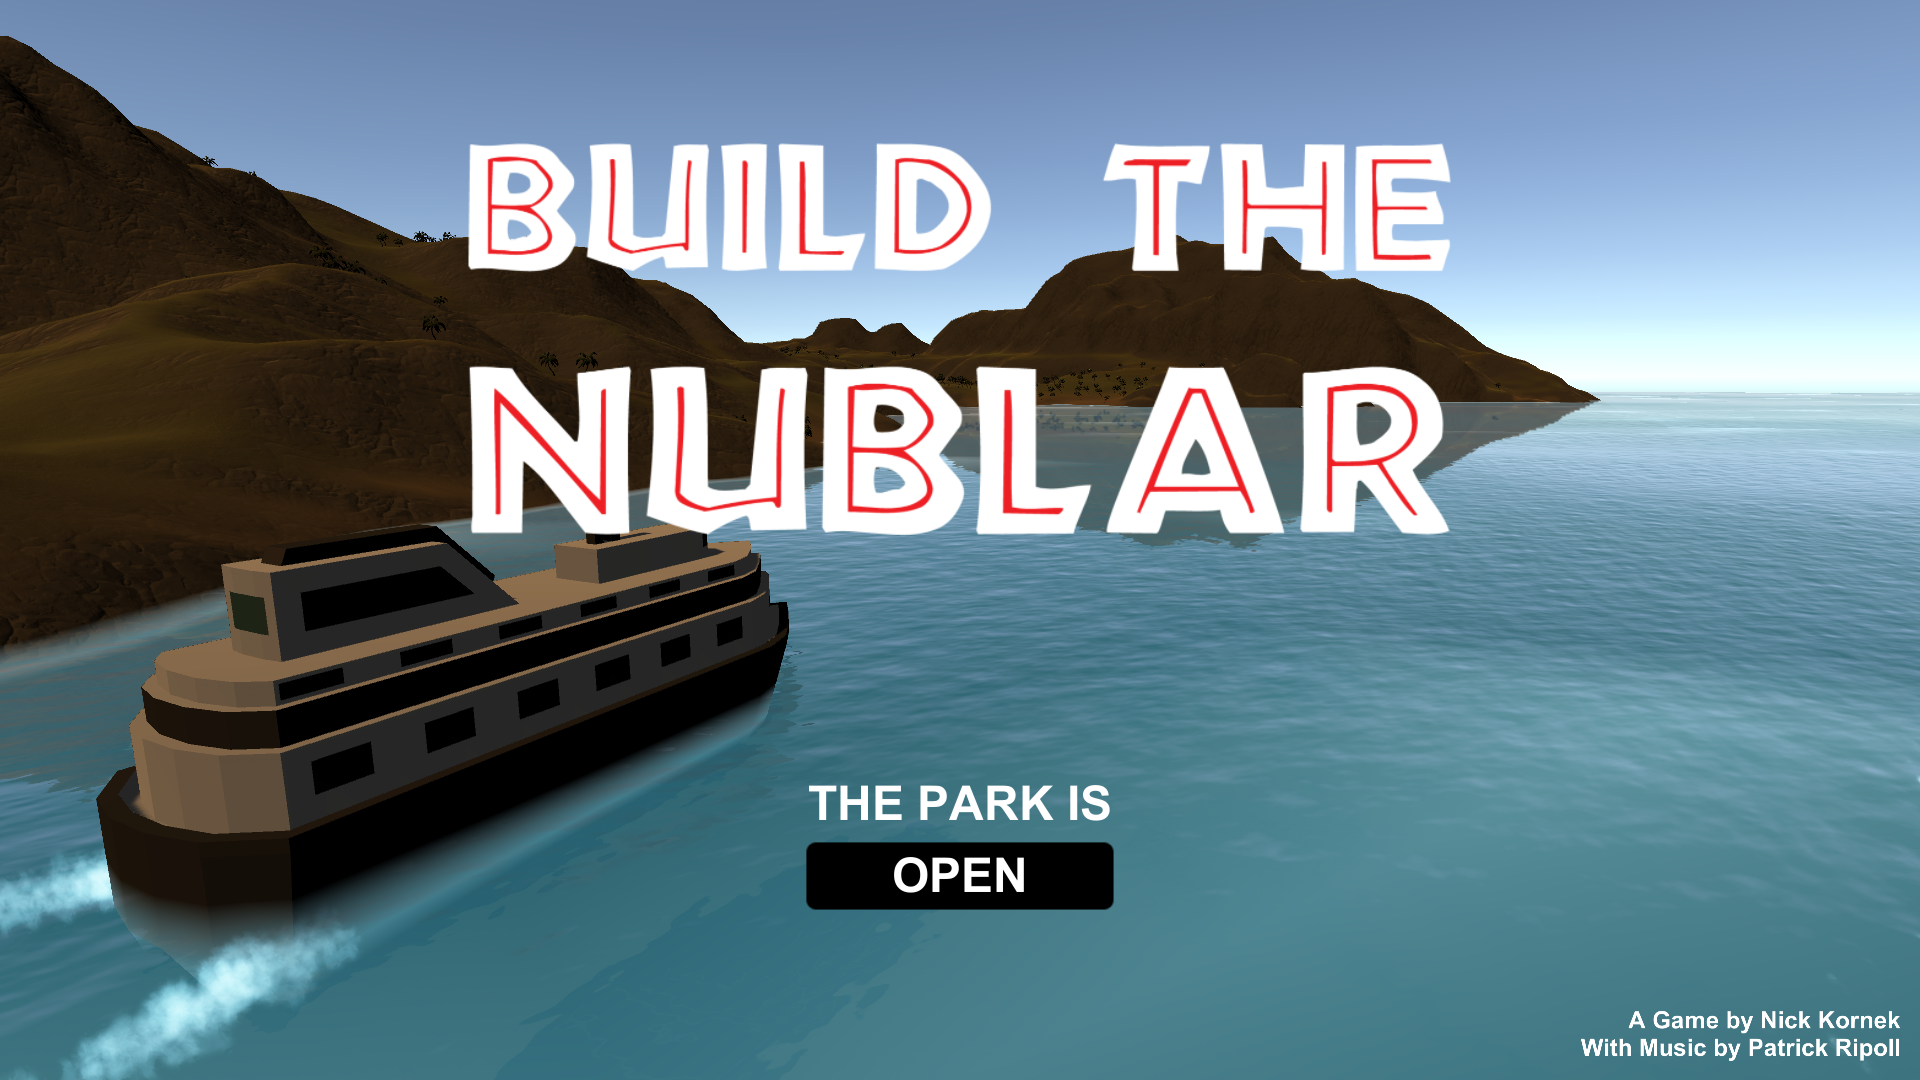 Build The Nublar By Nick Kornek For Wizard Jam Itchio - Cruise ship building games